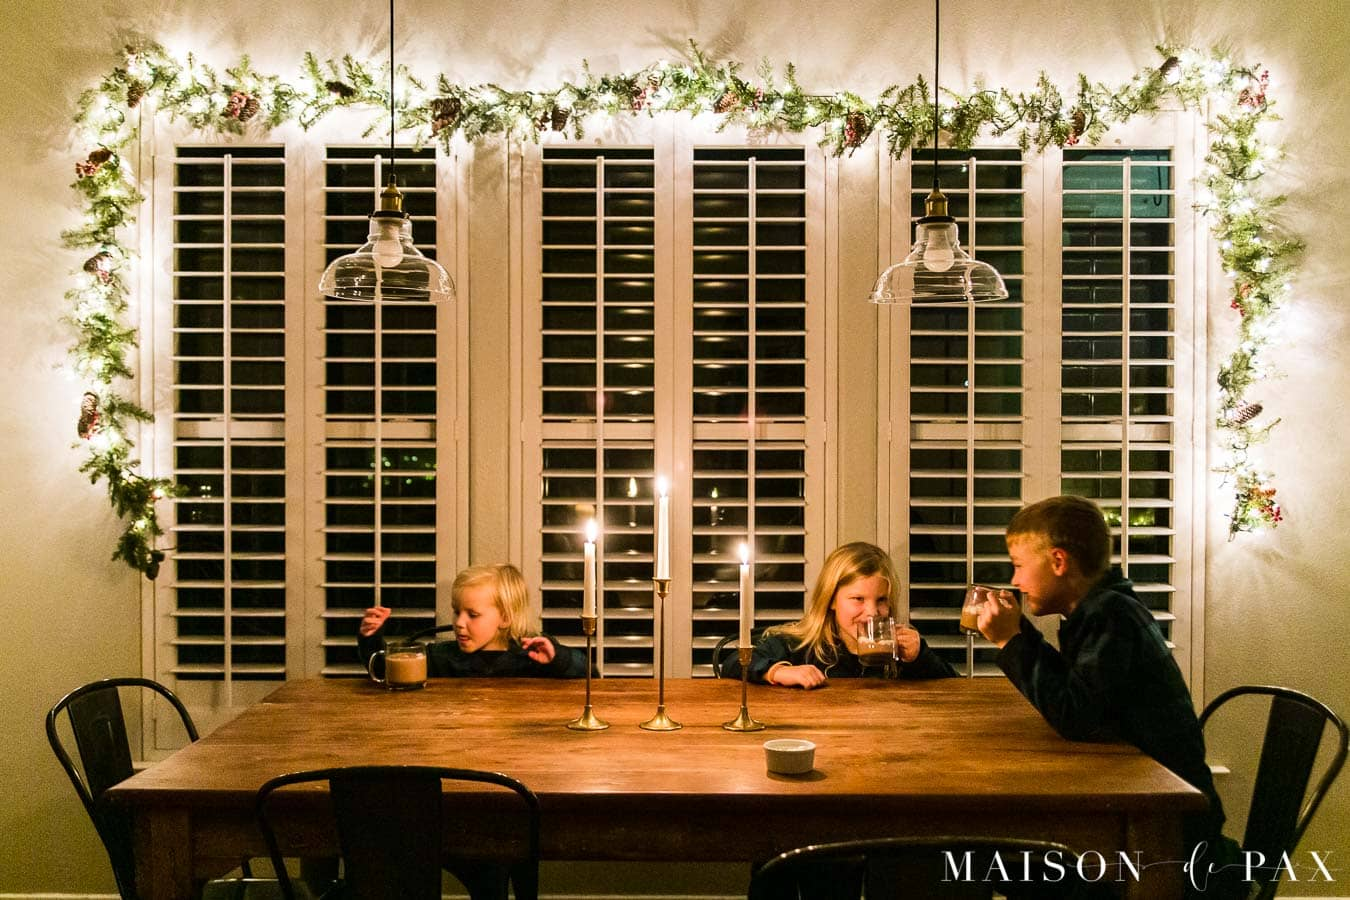 kids enjoying hot chocolate at the table by candlelight | Maison de Pax